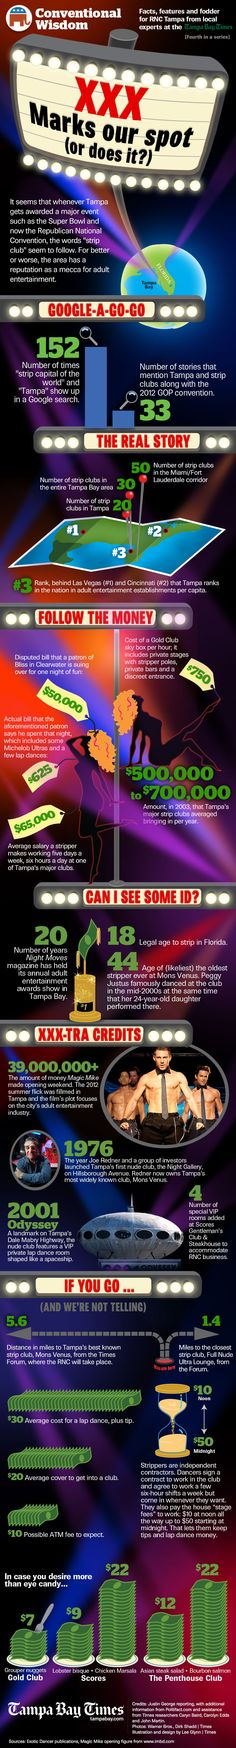 RNC 2012: Conventional Wisdom: Strip Club Capital? | Visit our new infographic gallery at visualoop.com/